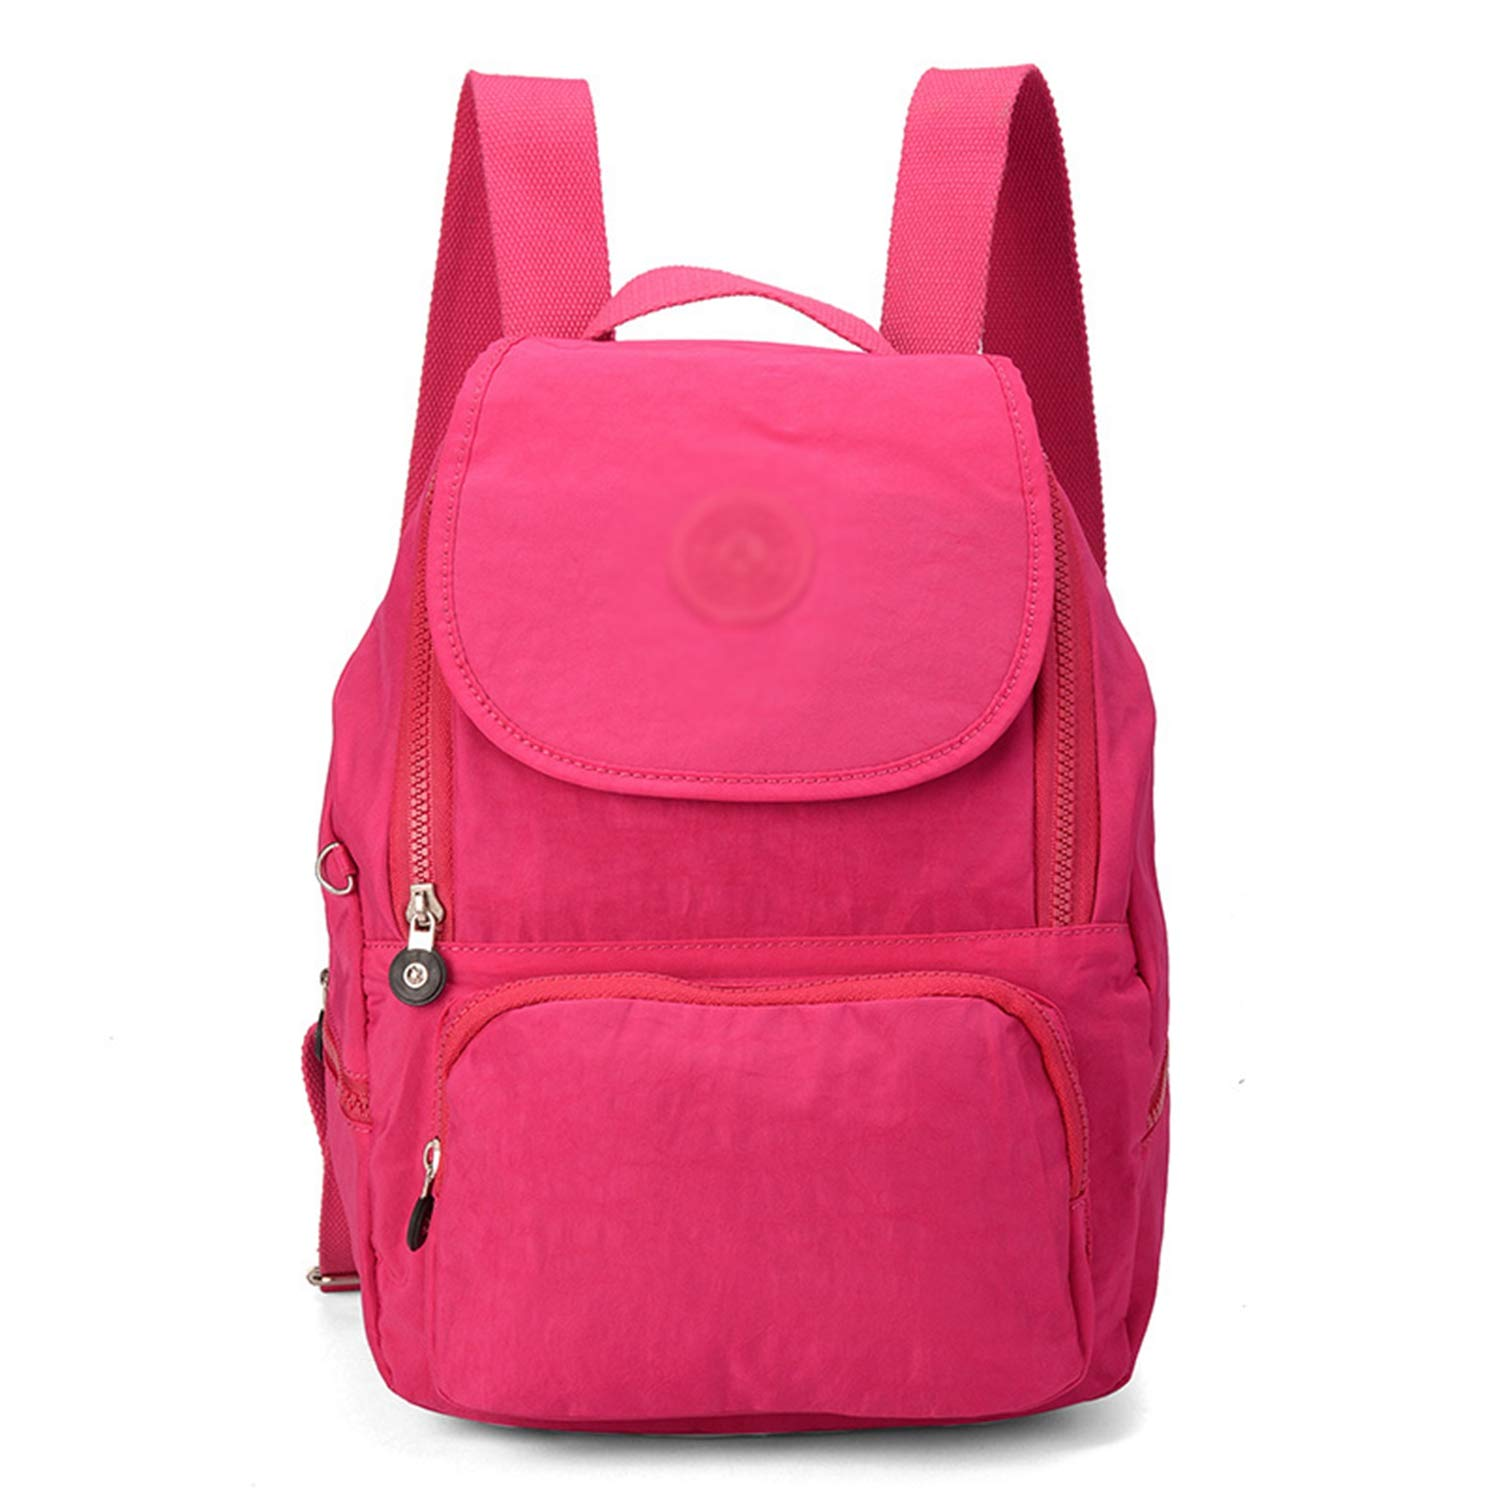 2f63bffb02a1 Amazon.com  Women Backpack Girl Frozac Bagpacks Feminina Shoulder Schoolbag  Backpacks for Teenage Female  Computers   Accessories